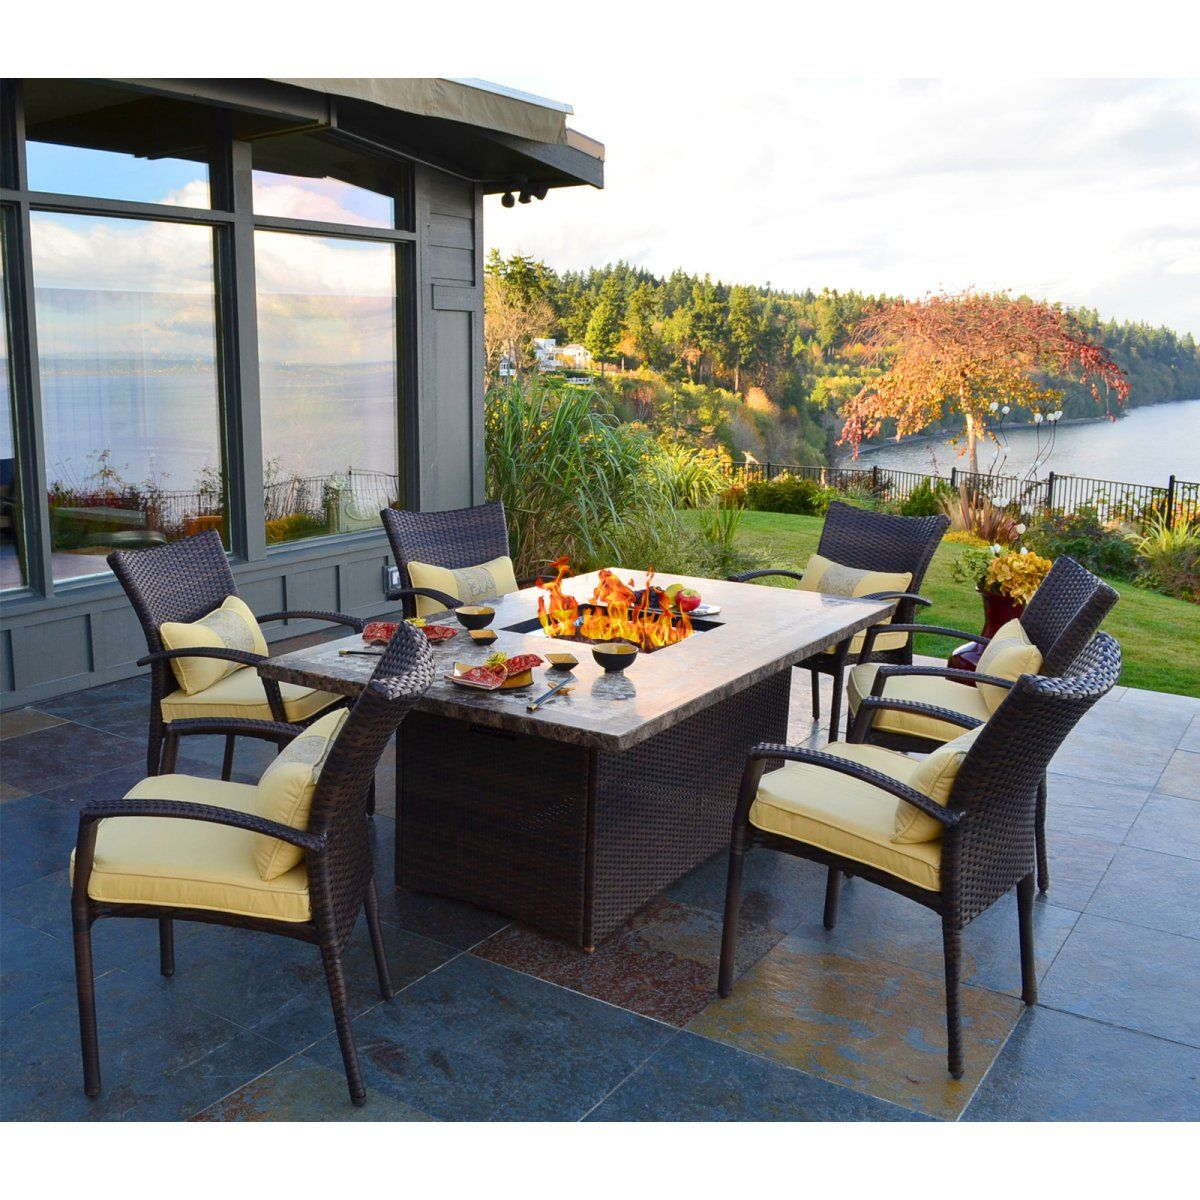 Resistant rattan effect outdoor patio dining set with round table - Find This Pin And More On Patio Dining